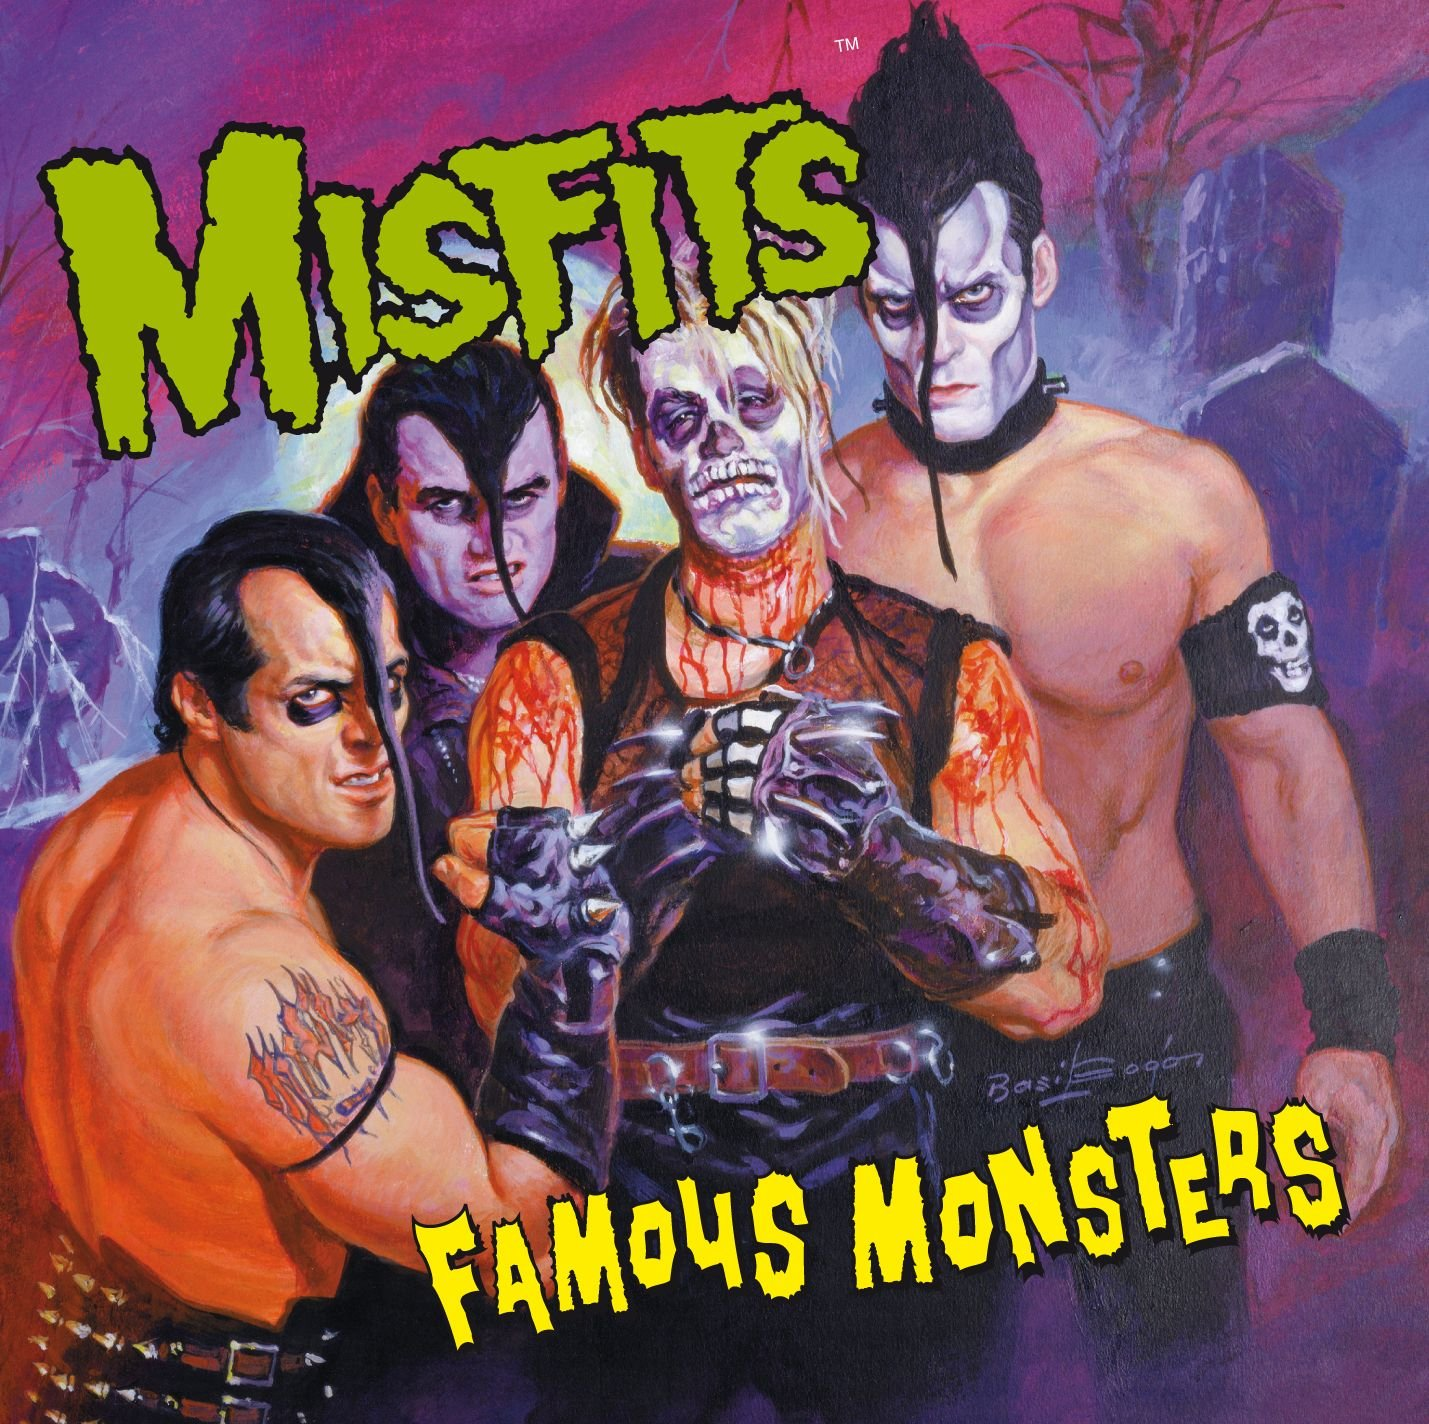 YITT - Saturday Night Melody (Righteous Brothers vs. The Misfits)